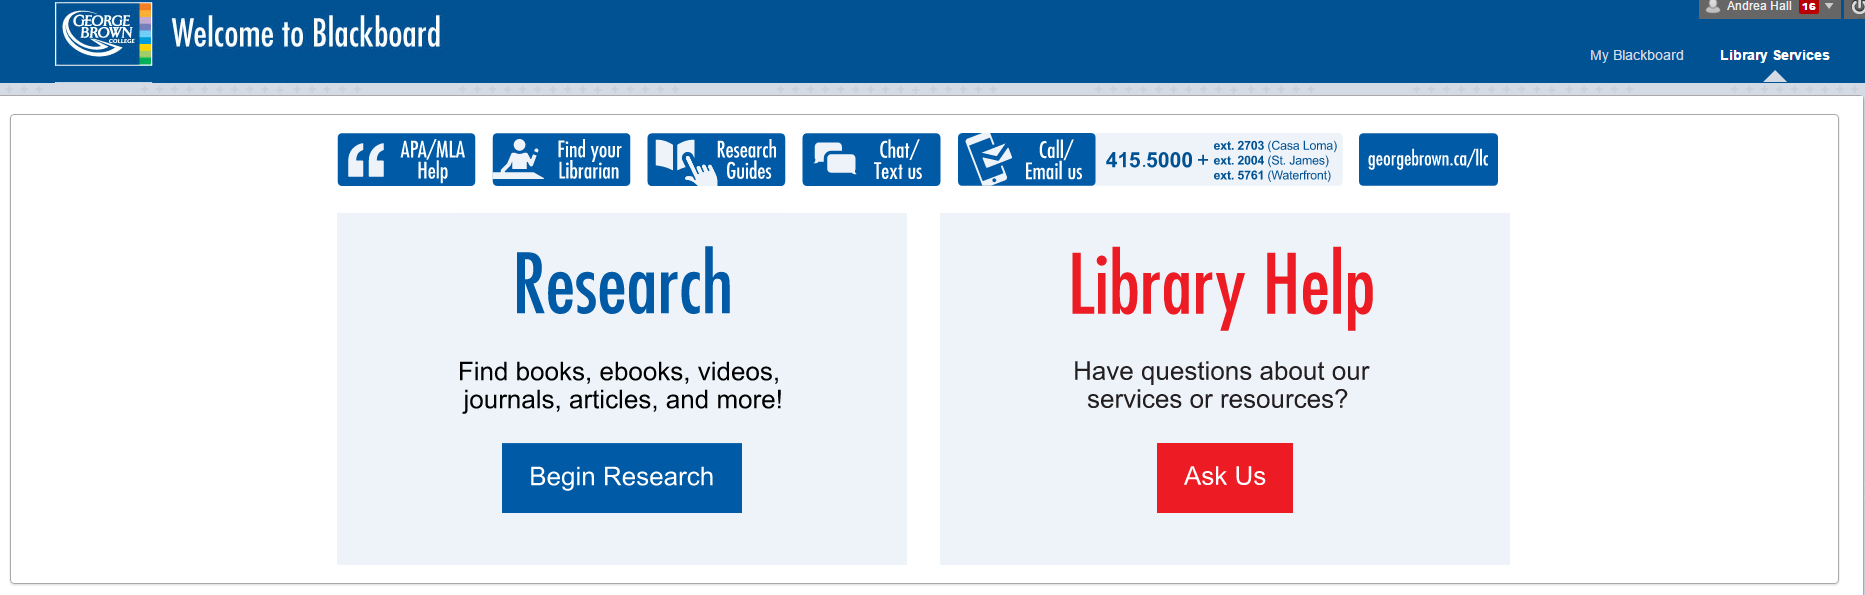 Screenshot of the Library Services page in Blackboard